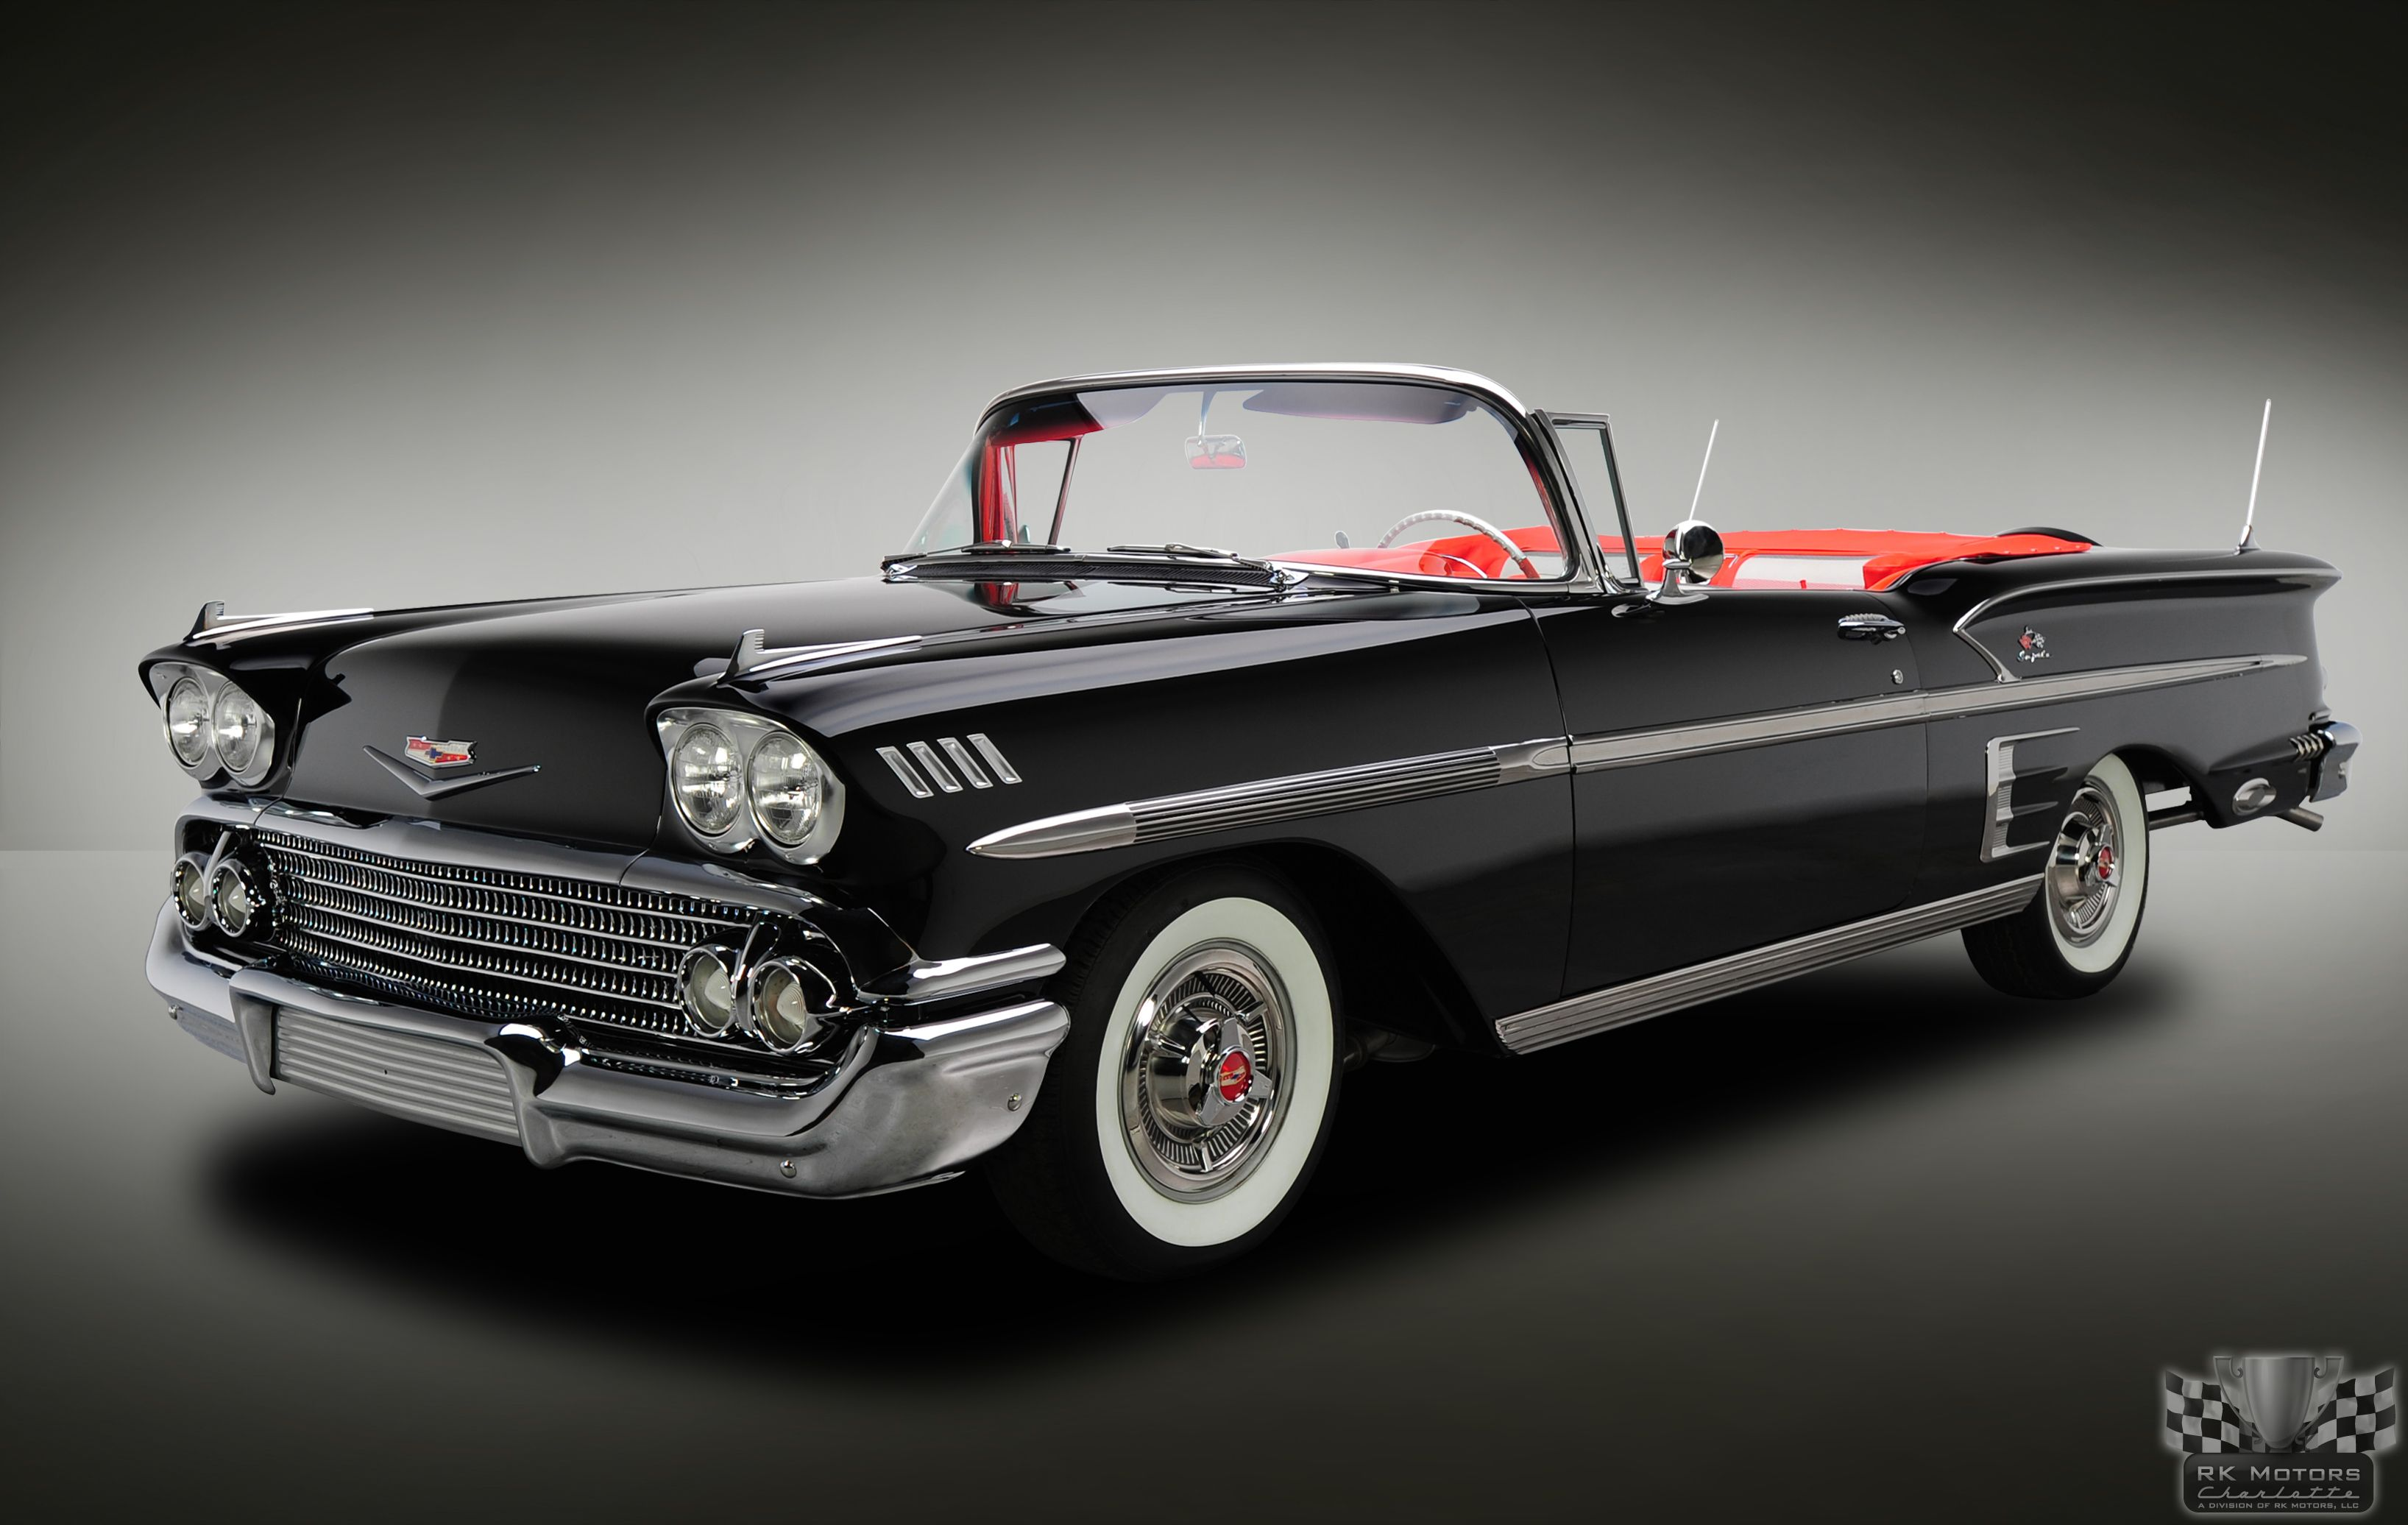 Chevy Classic Cars Wallpapers - Top